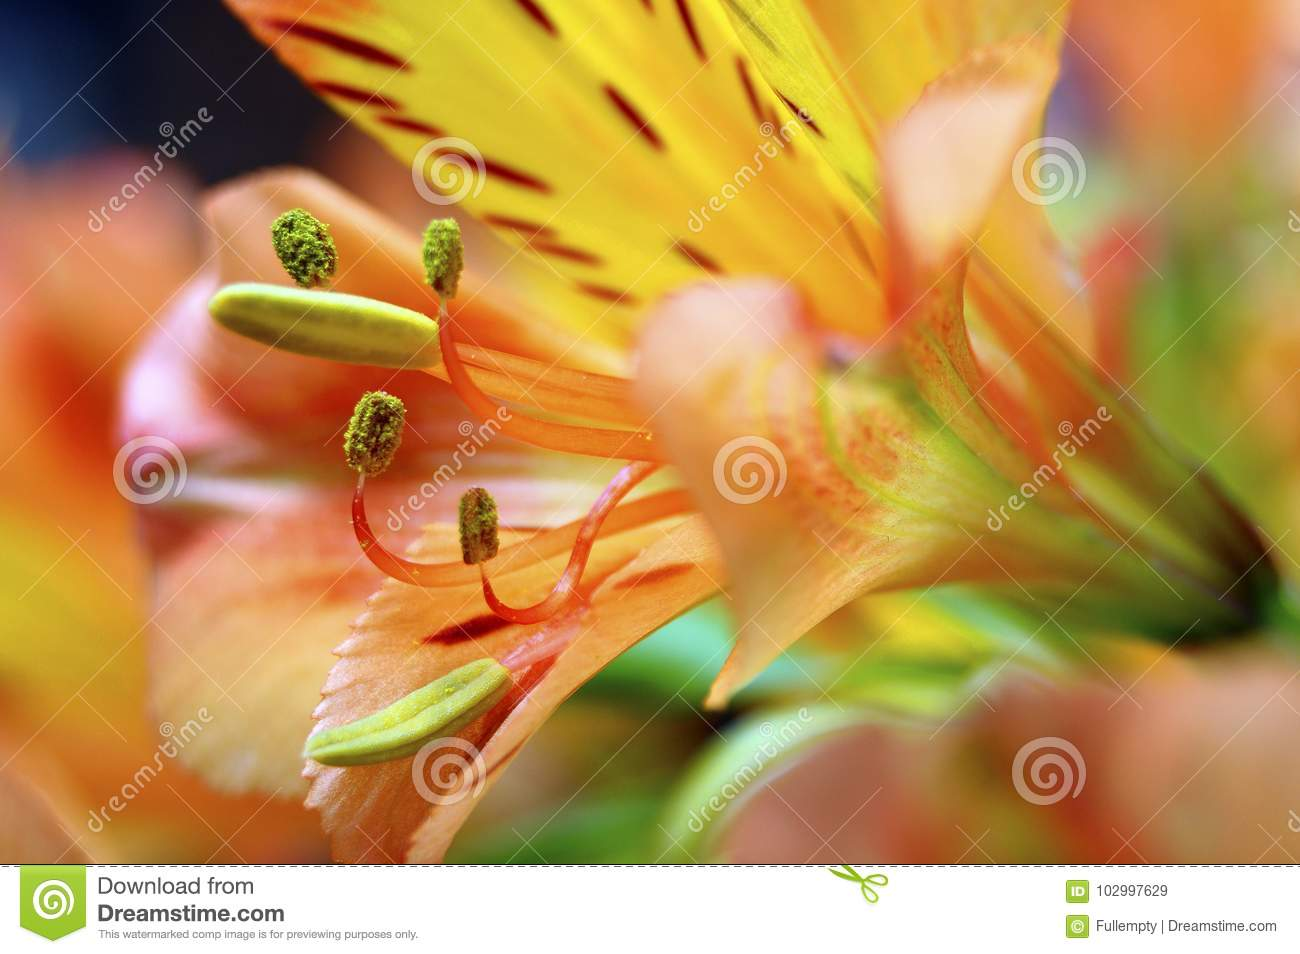 Closeup of orange peruvian lily flower stock image image of lily lily flower macro of orange and yellow lily of the incas alstroemeria in a bouquet of flowers izmirmasajfo Gallery